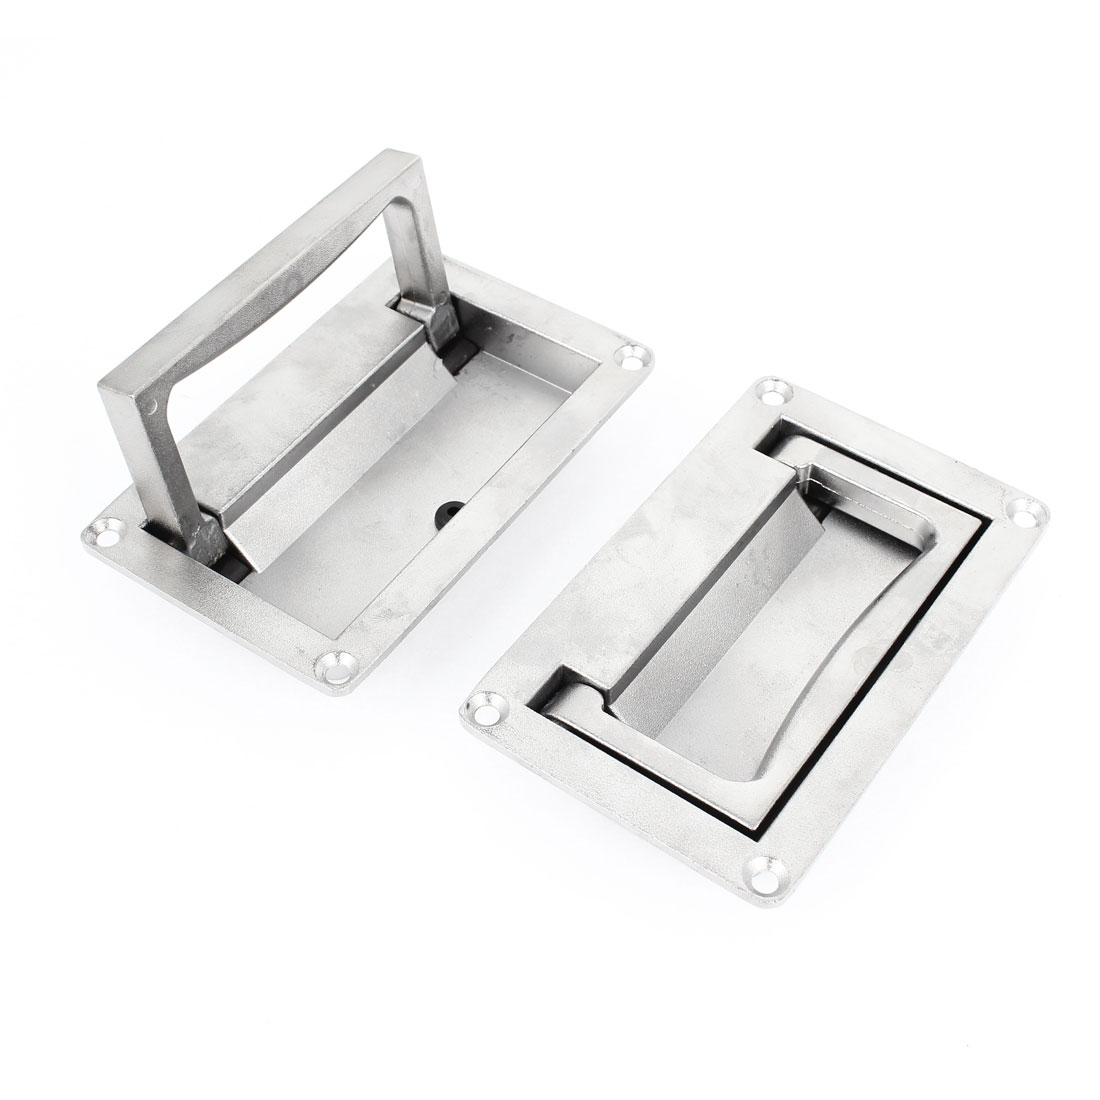 Hardware Parts 11cm Length Cupboard Cabinet Pull Handle Silver Tone 2pcs